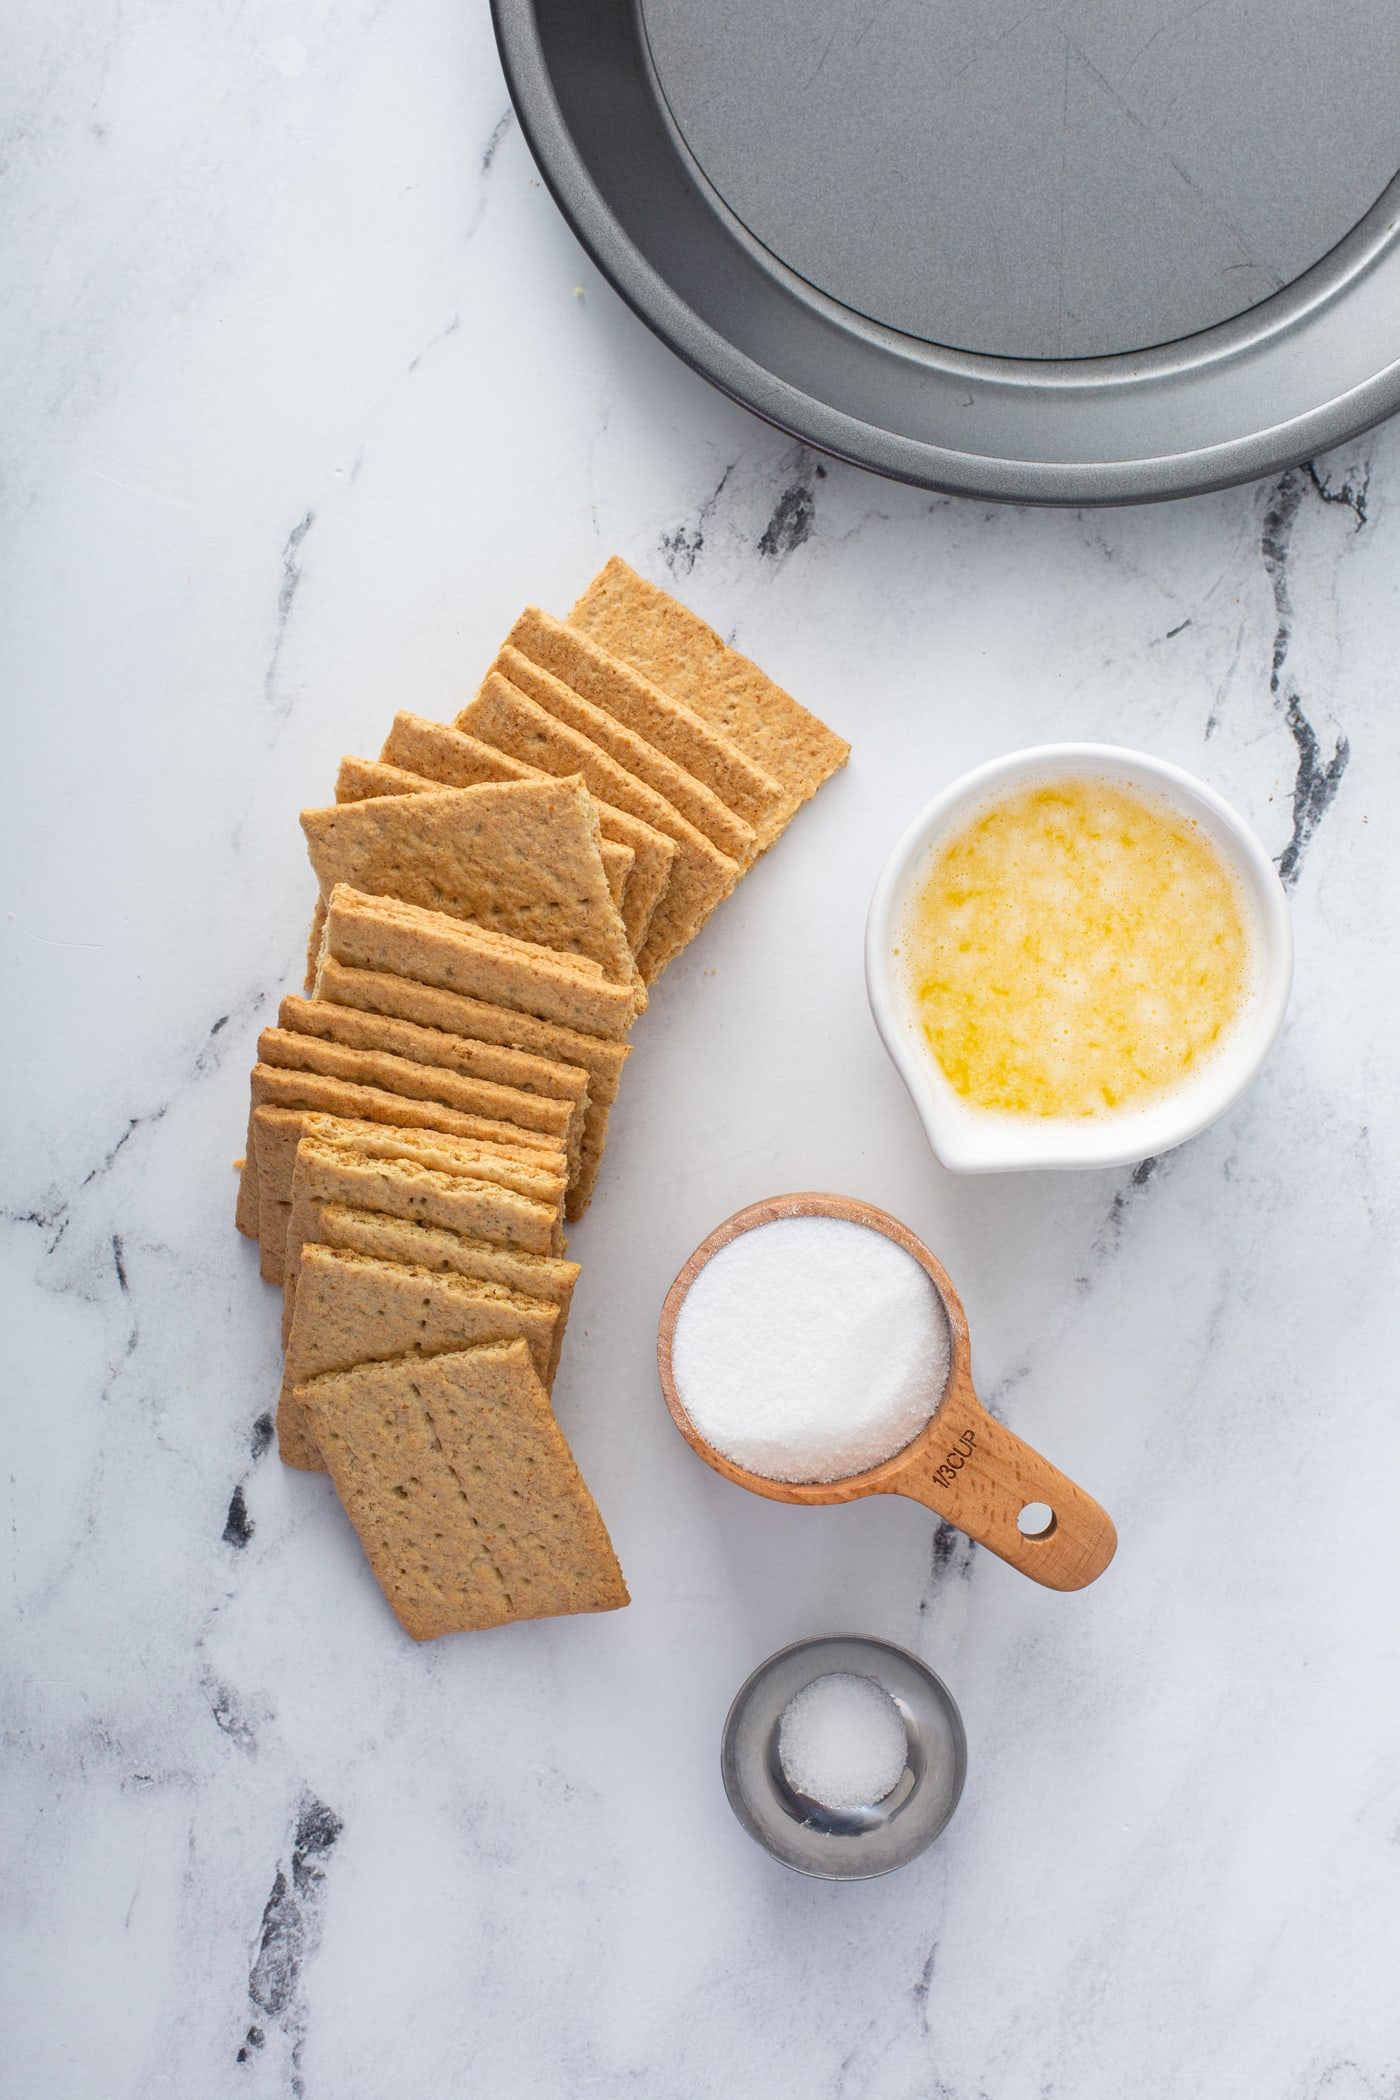 Graham crackers and containers of sugar, and melted butter.